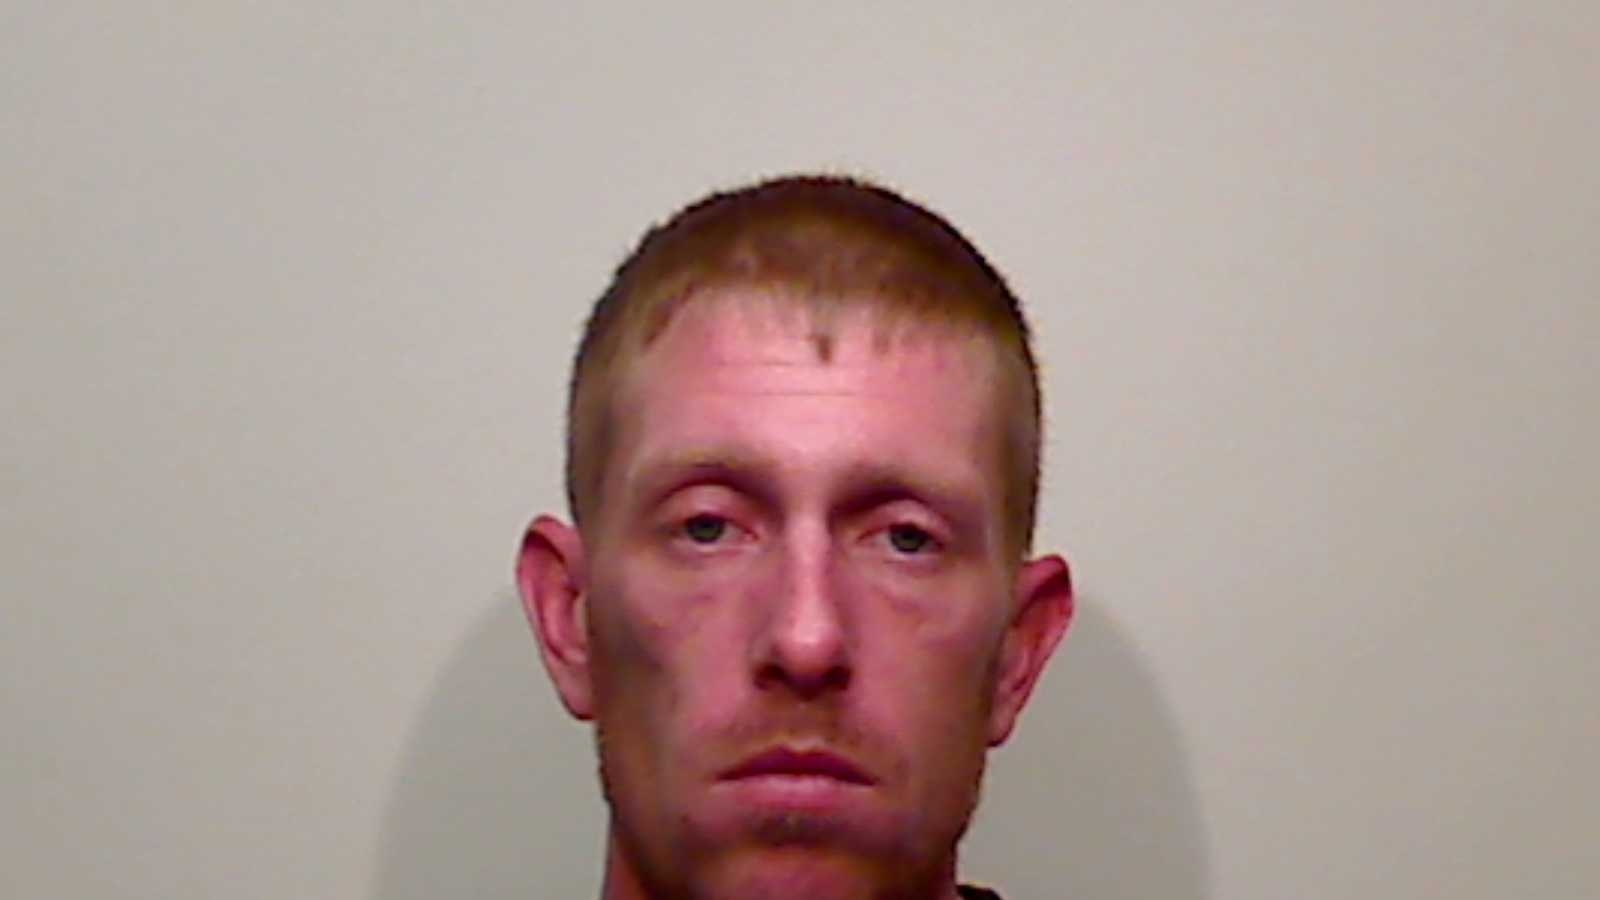 Raymond Robidoux was charged by Somerset Police with larceny from a building, malicious destruction of property over $250.00 and possession of burglarious tools.